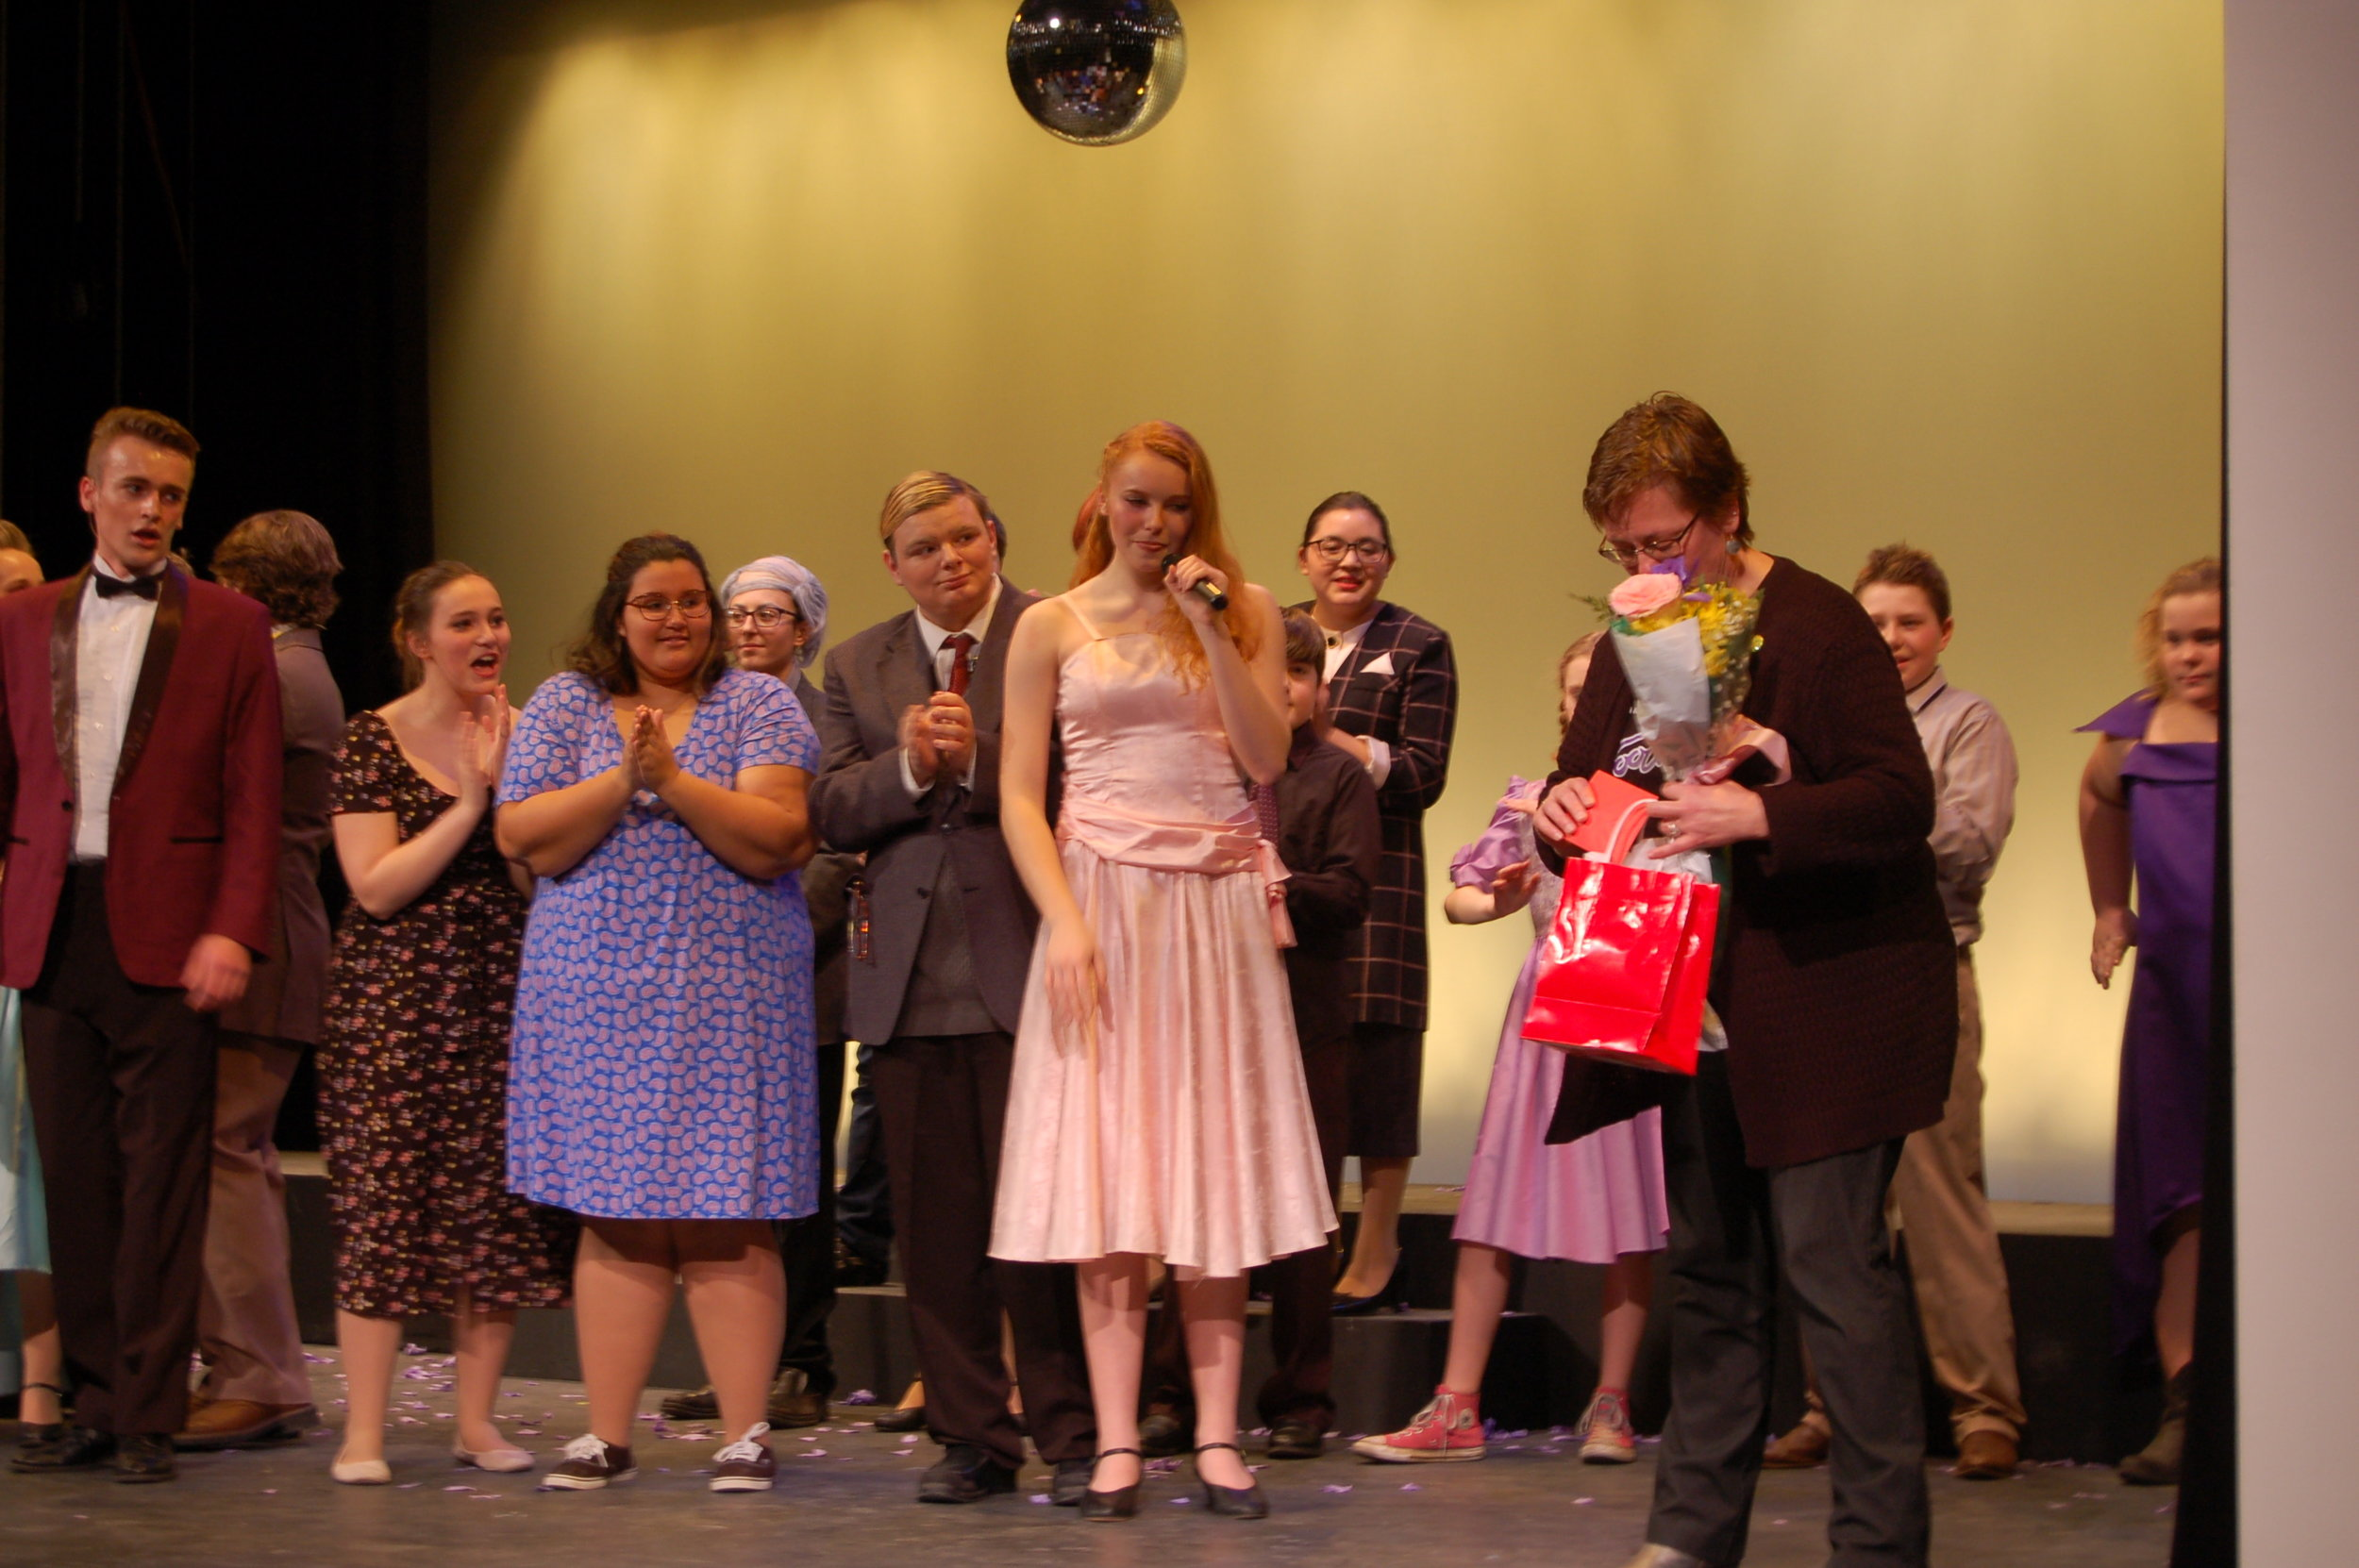 After Sunday's matinee, to send off the show's last performance, members of the cast and crew made special remarks and thanks, giving and accepting cards and flowers. Music director Liz Cordes, far right, accepts a gift from the show's cast and crew.